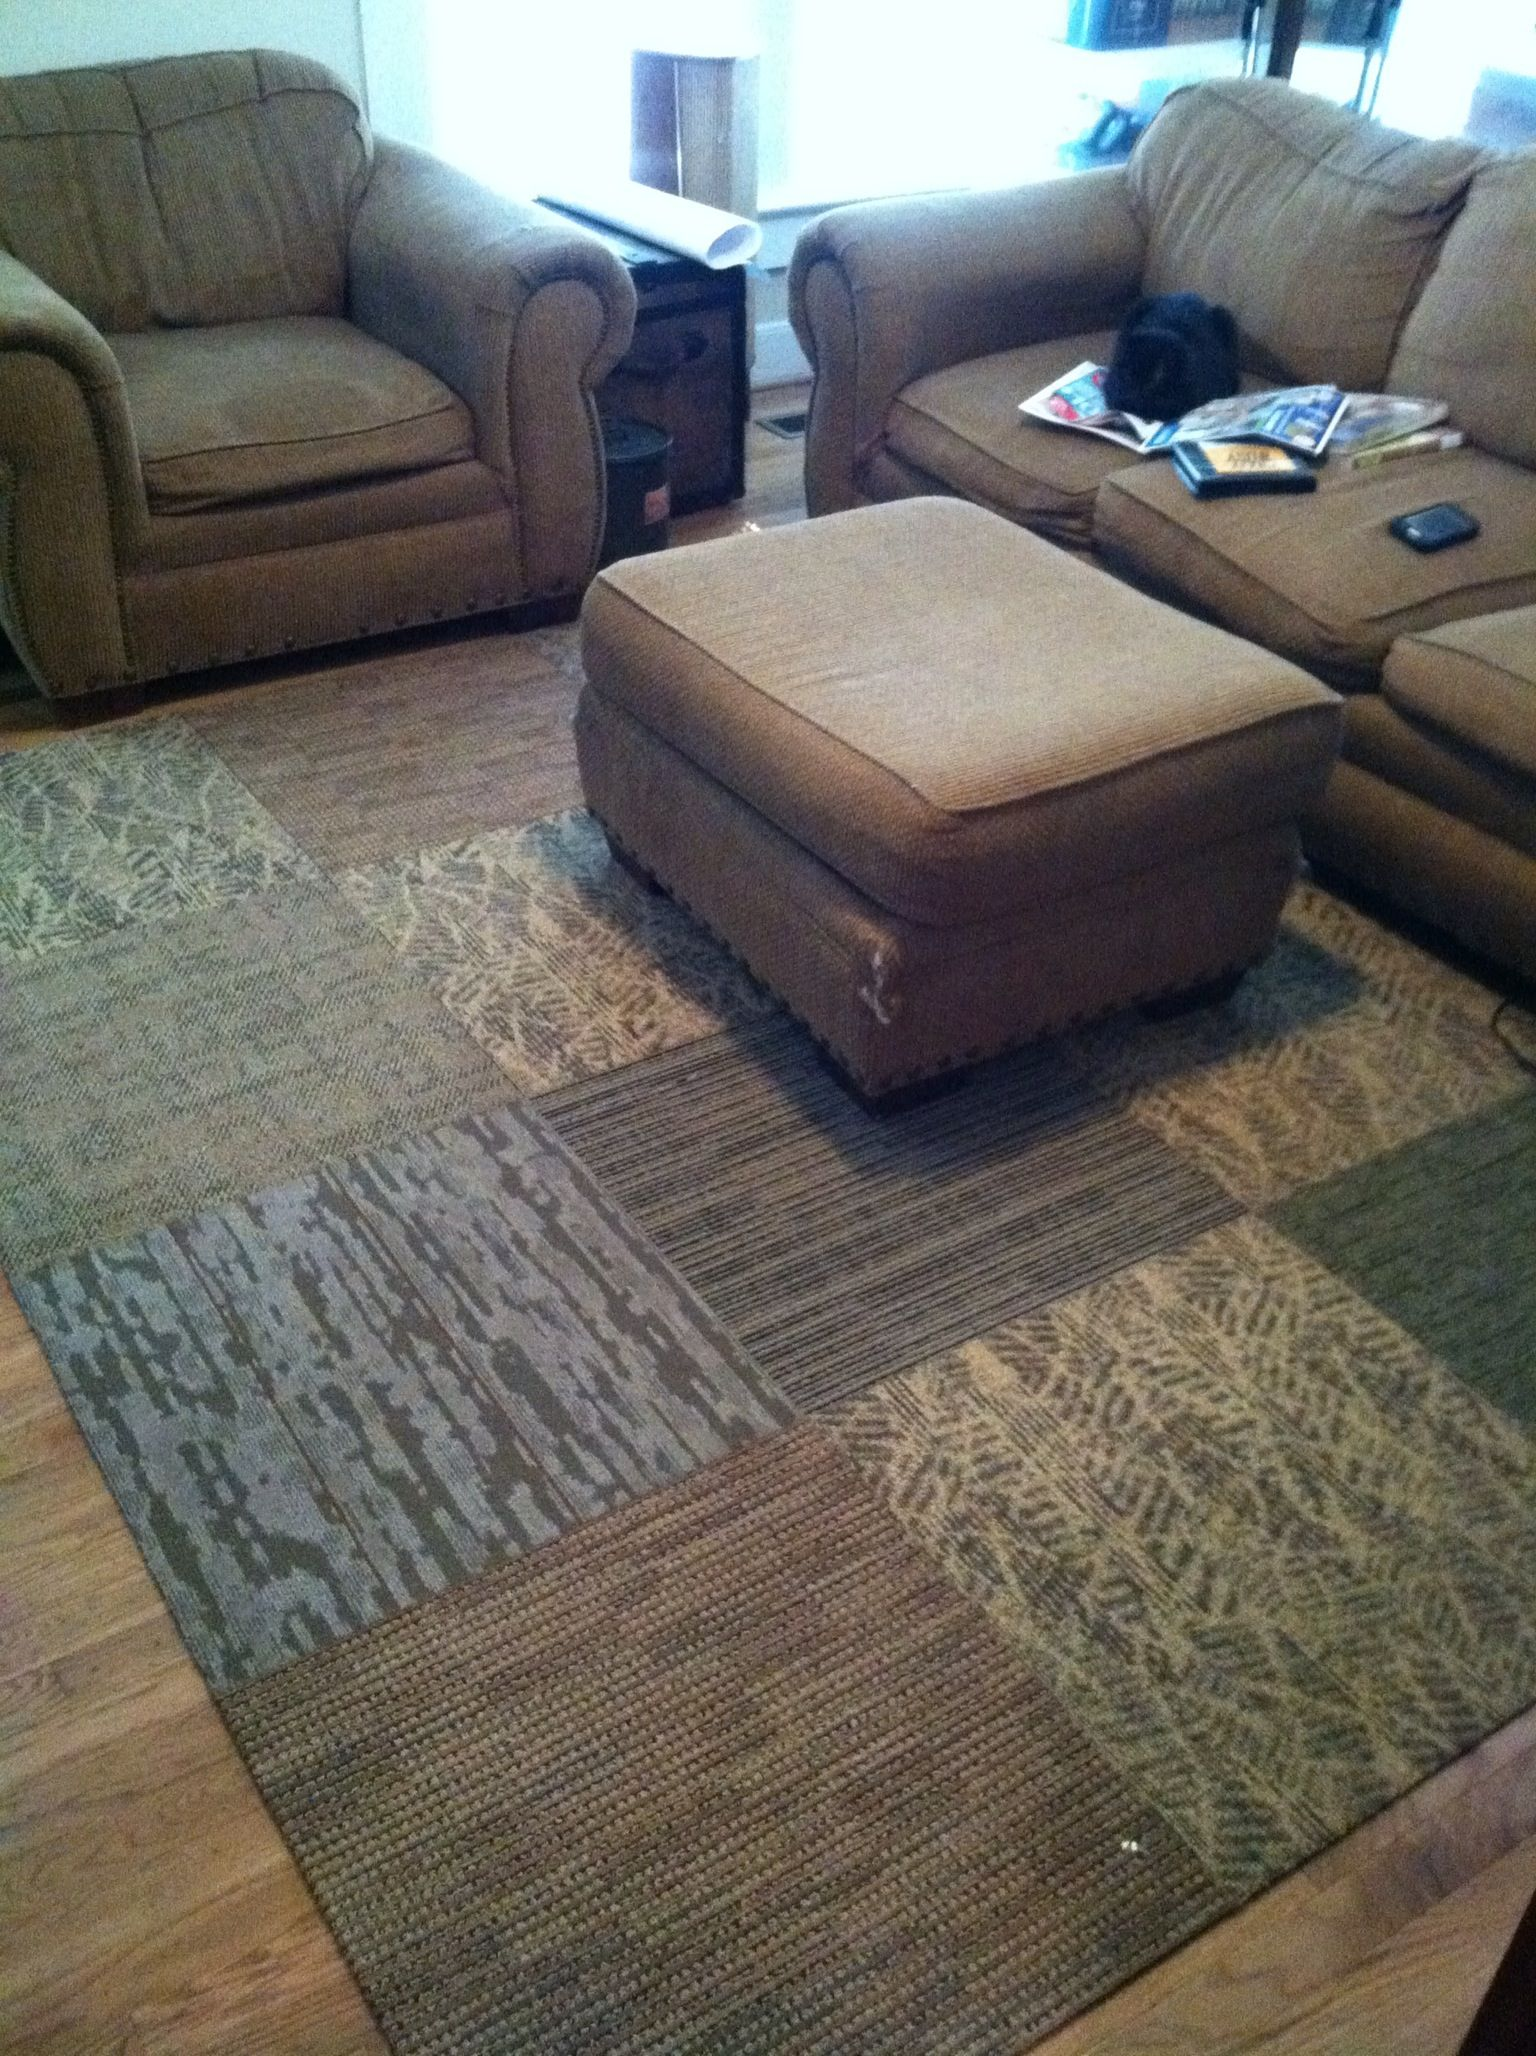 Harley color carpet tiles - Inexpensive Area Rug 12 Industrial Carpet Tiles 2 Ea Connected With Extra Sticky